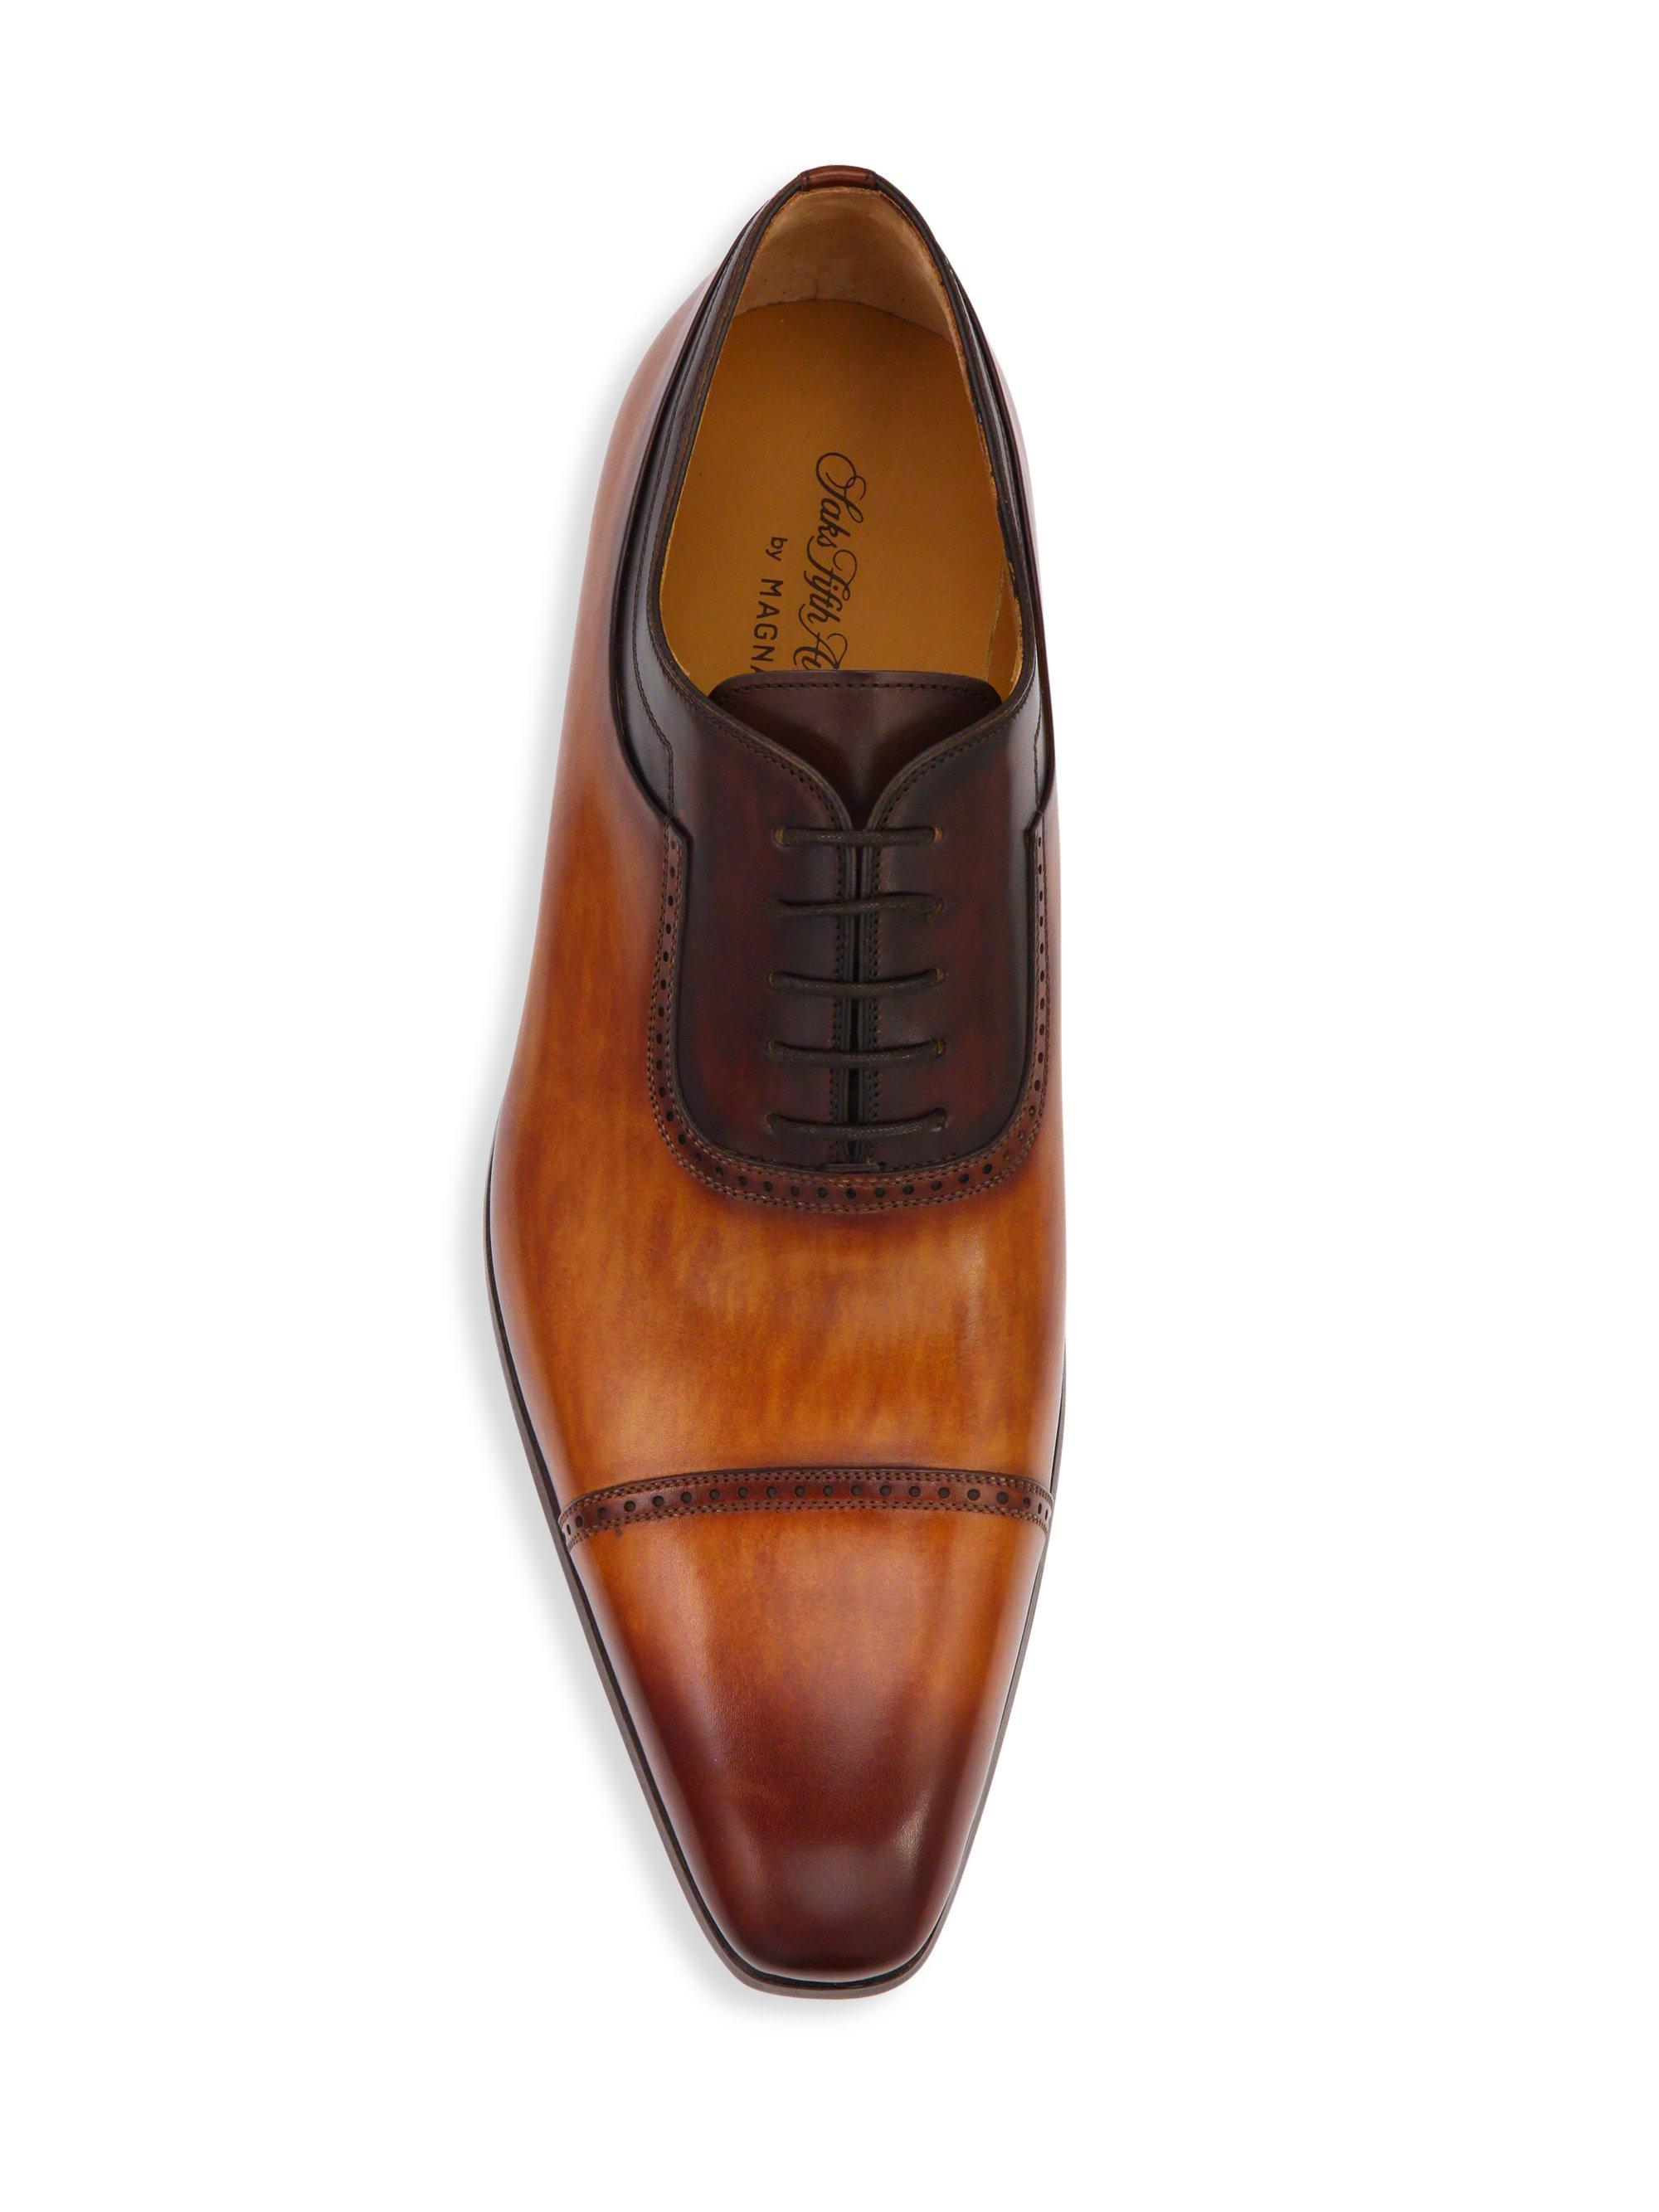 Saks Fifth AvenueCOLLECTION BY MAGNANNI Two-Tone Leather Cap-Toe Oxfords ANVoLa